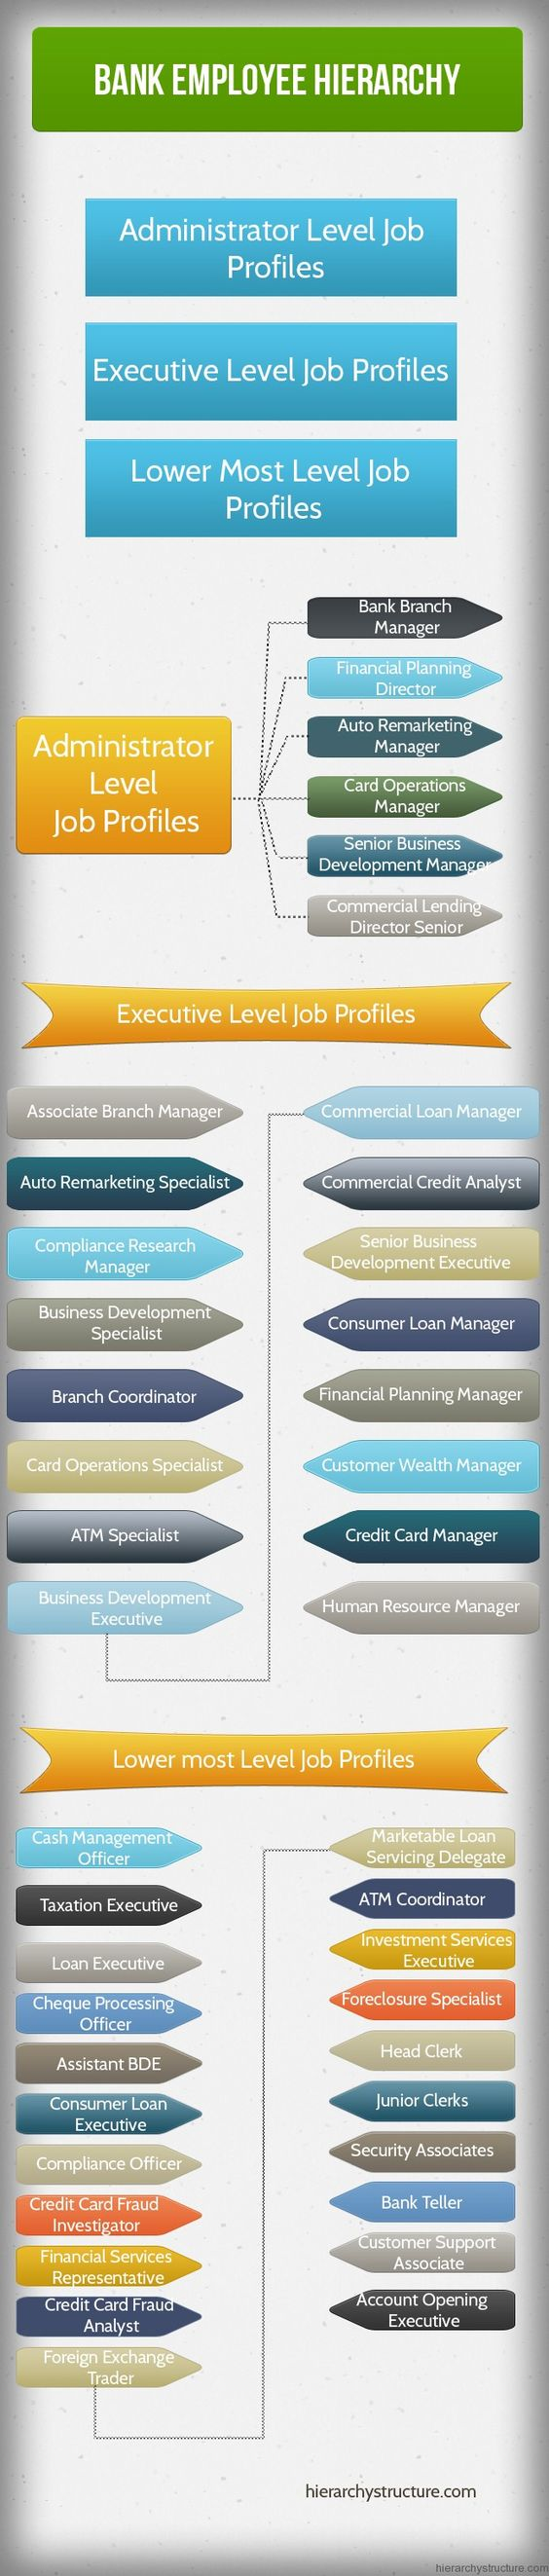 Bank Employee Hierarchy Jobs Hierarchy Pinterest